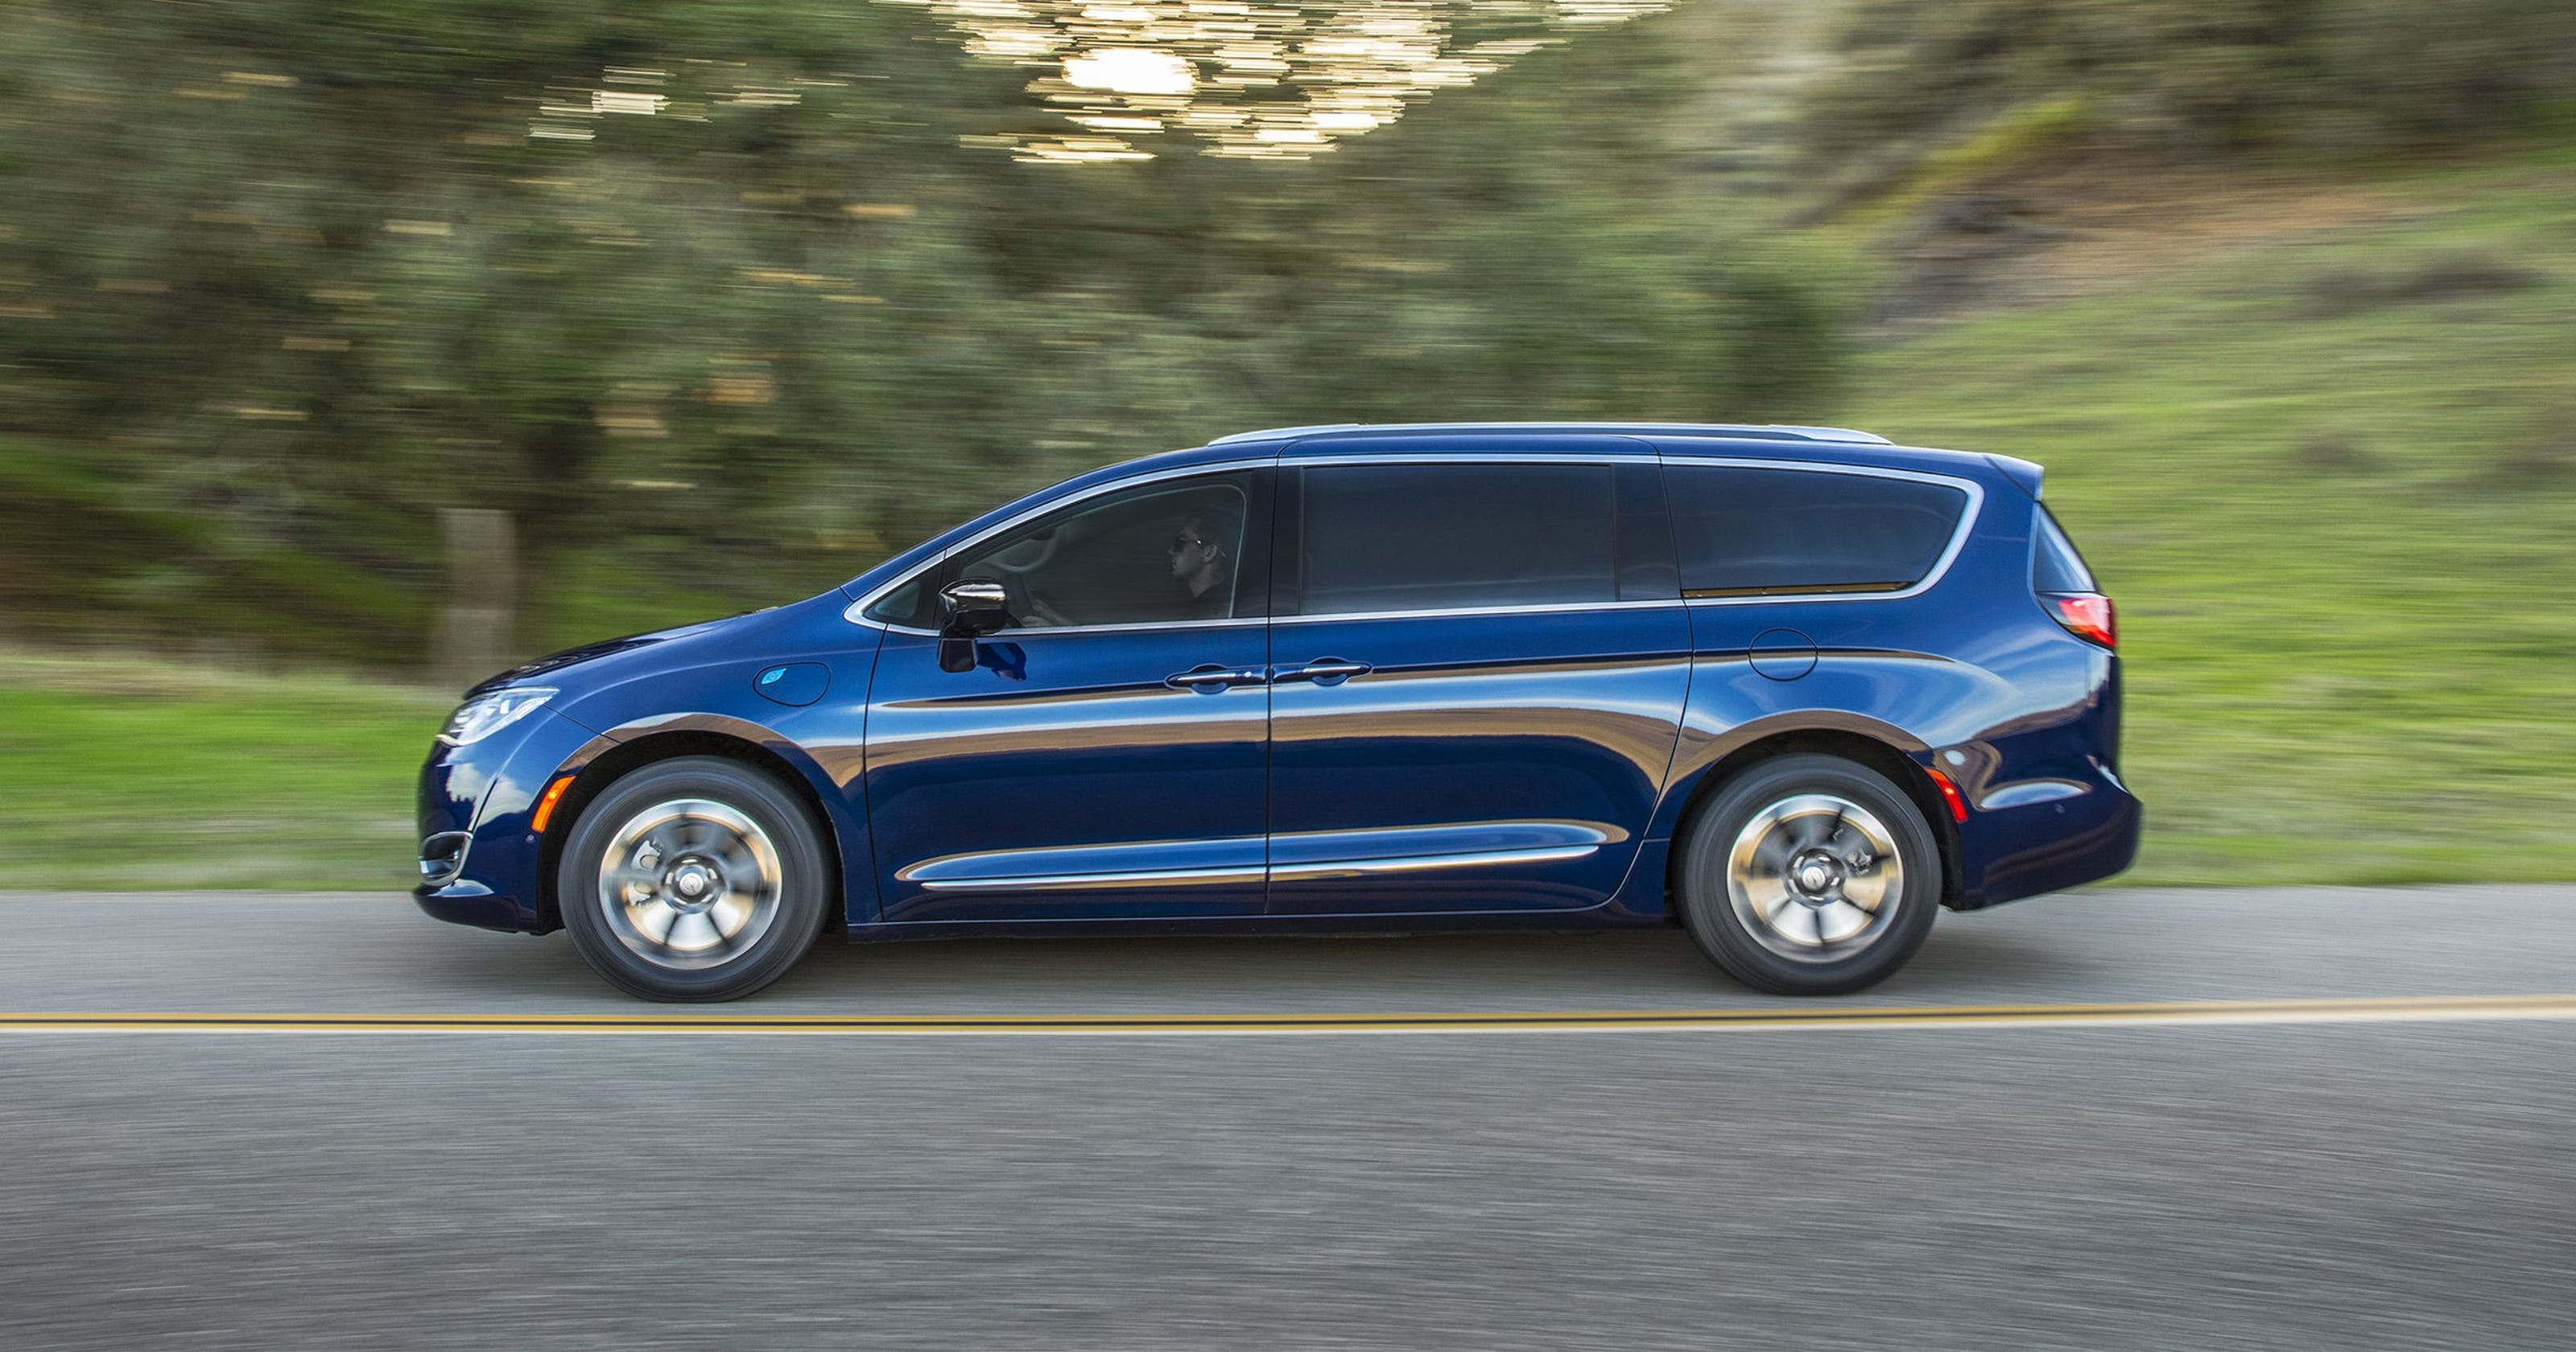 Fca Says Long Awaited Pacifica Hybrids Are On The Way